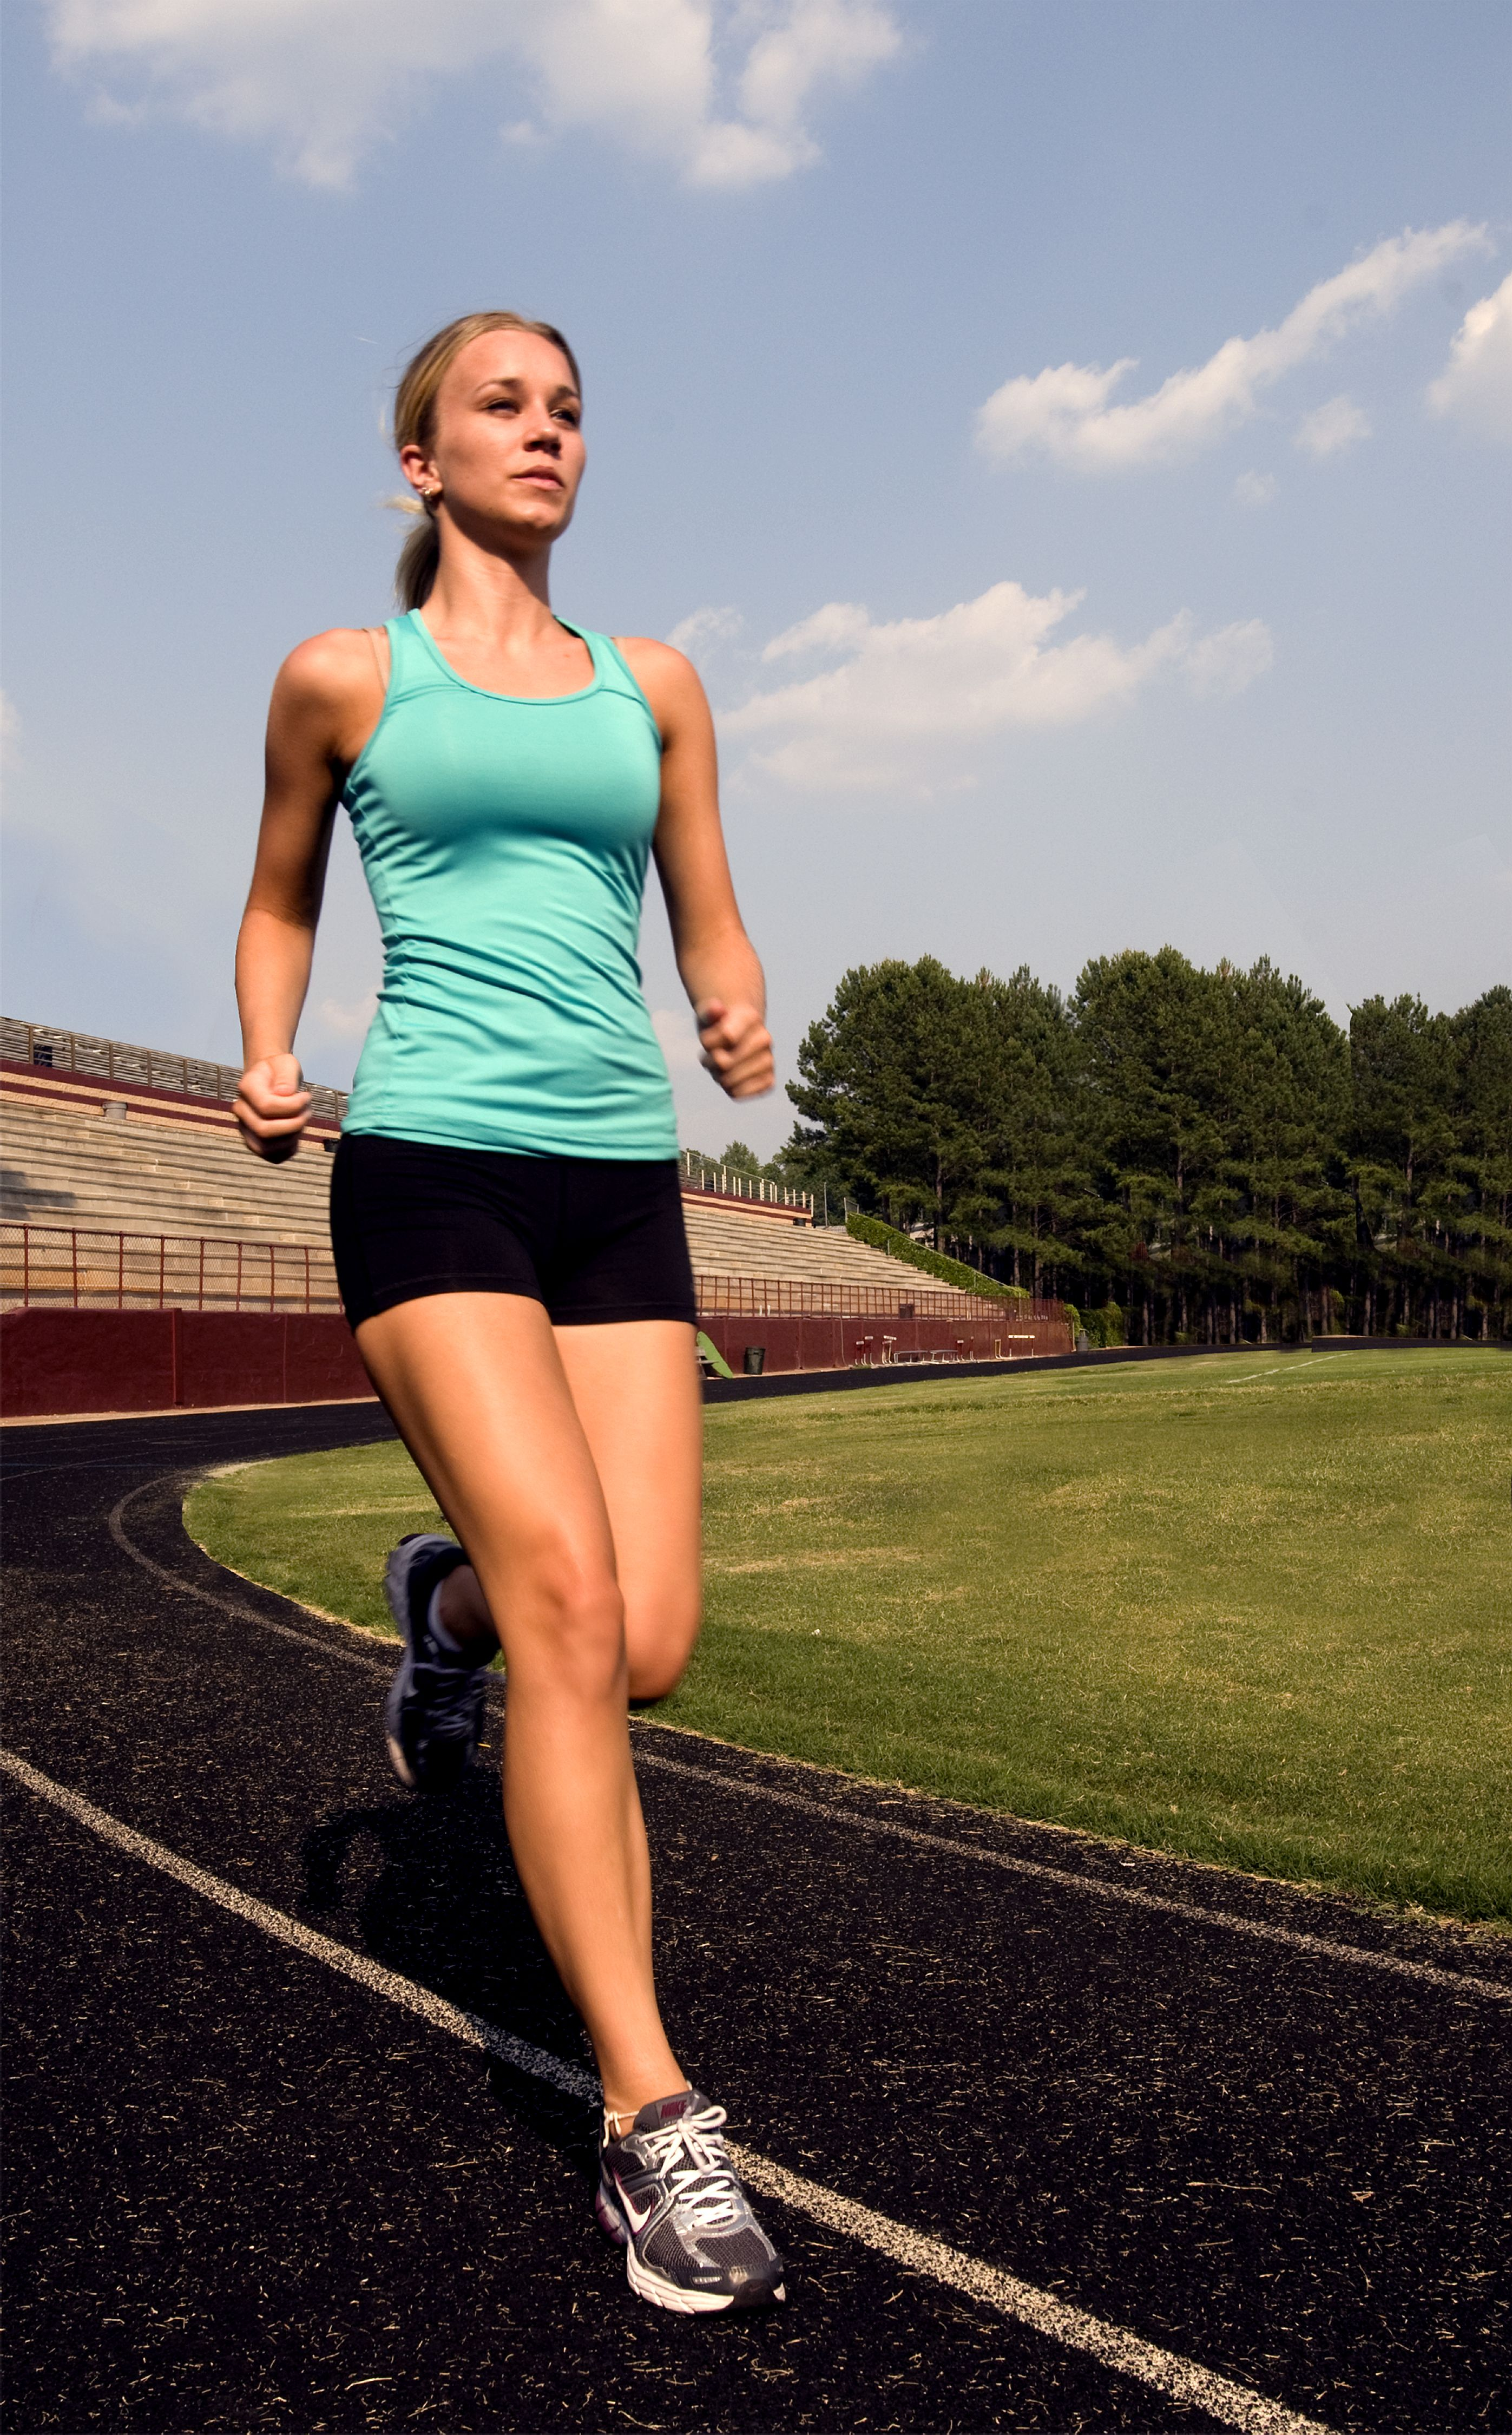 Free photograph; young, woman, photographed, stride, morning, jogging